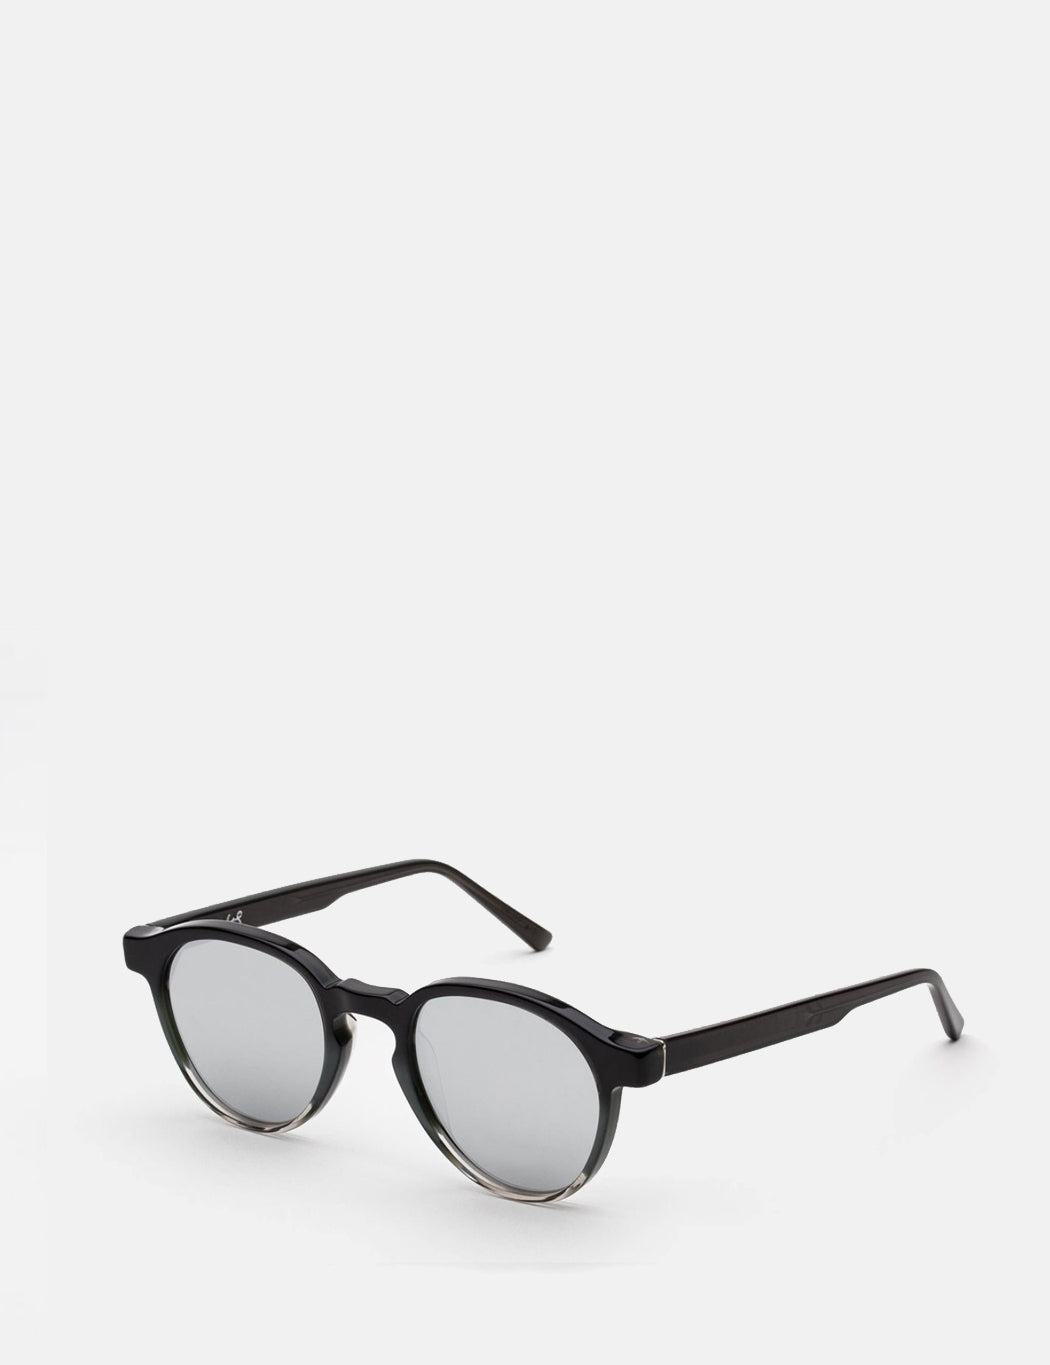 Super Iconic Sunglasses - Monochrome Fade